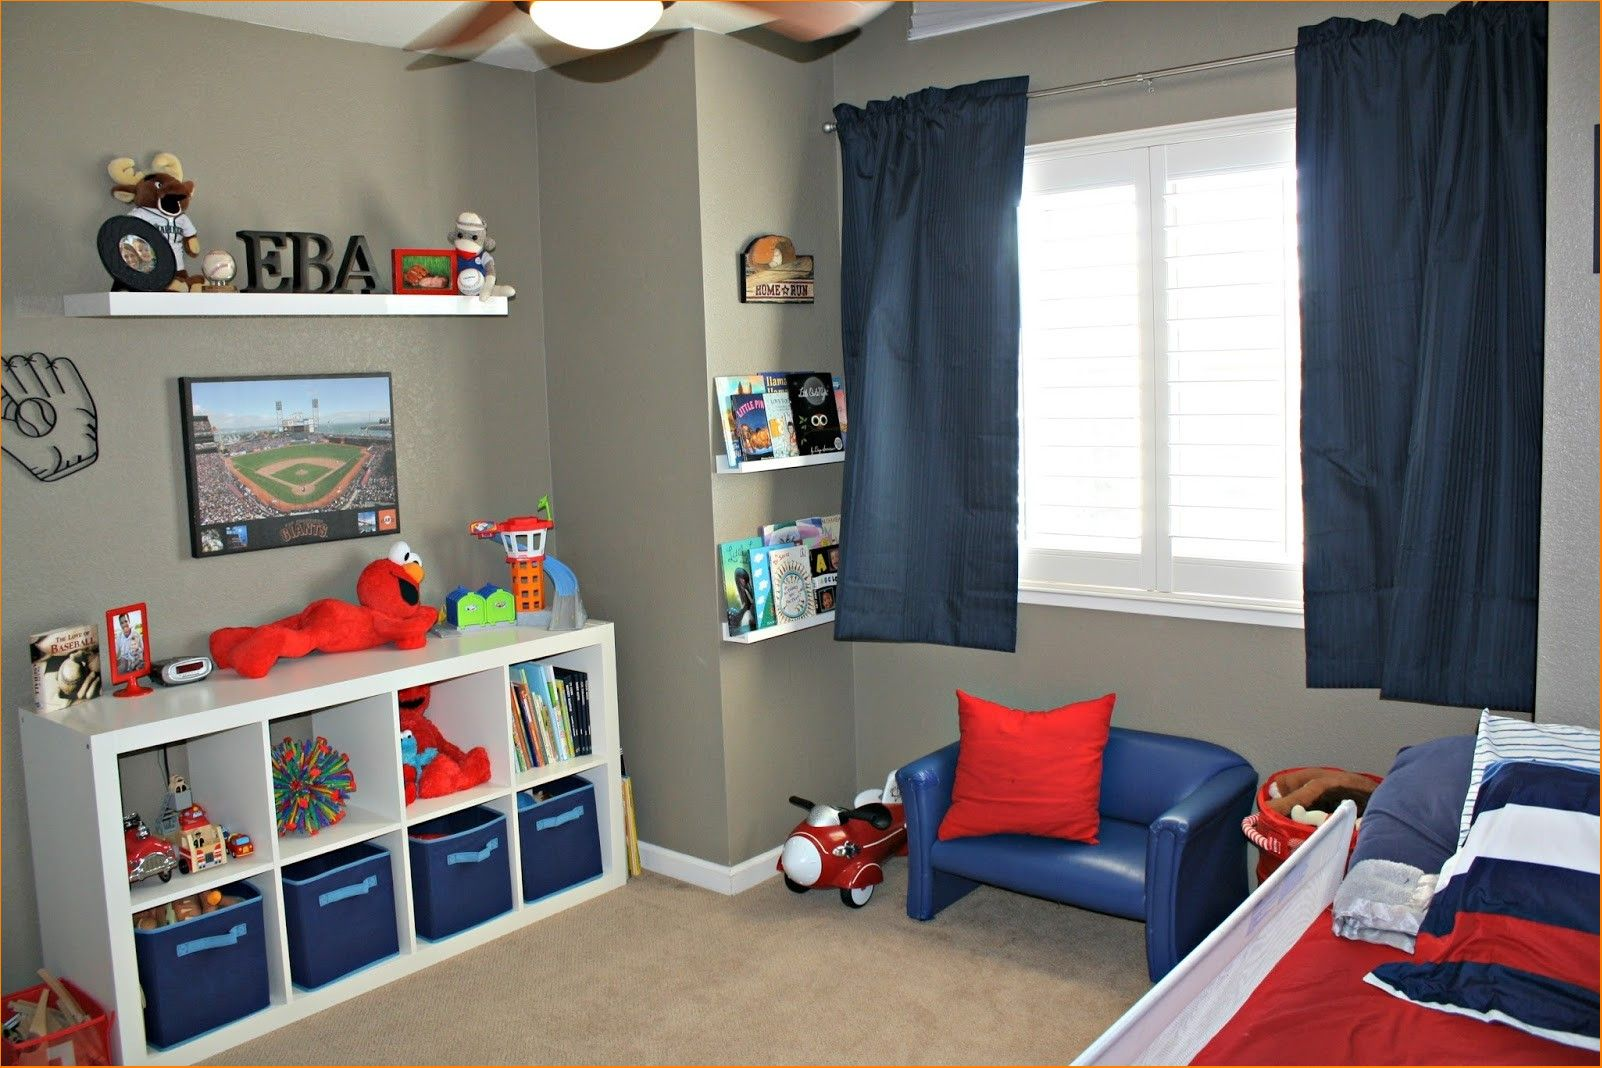 20 Interesting 2 Year Old Nursery Room Ideas Allowed For You To My Personal Blog Within Th Little Boy Bedroom Ideas Kids Bedroom Designs Boy Toddler Bedroom